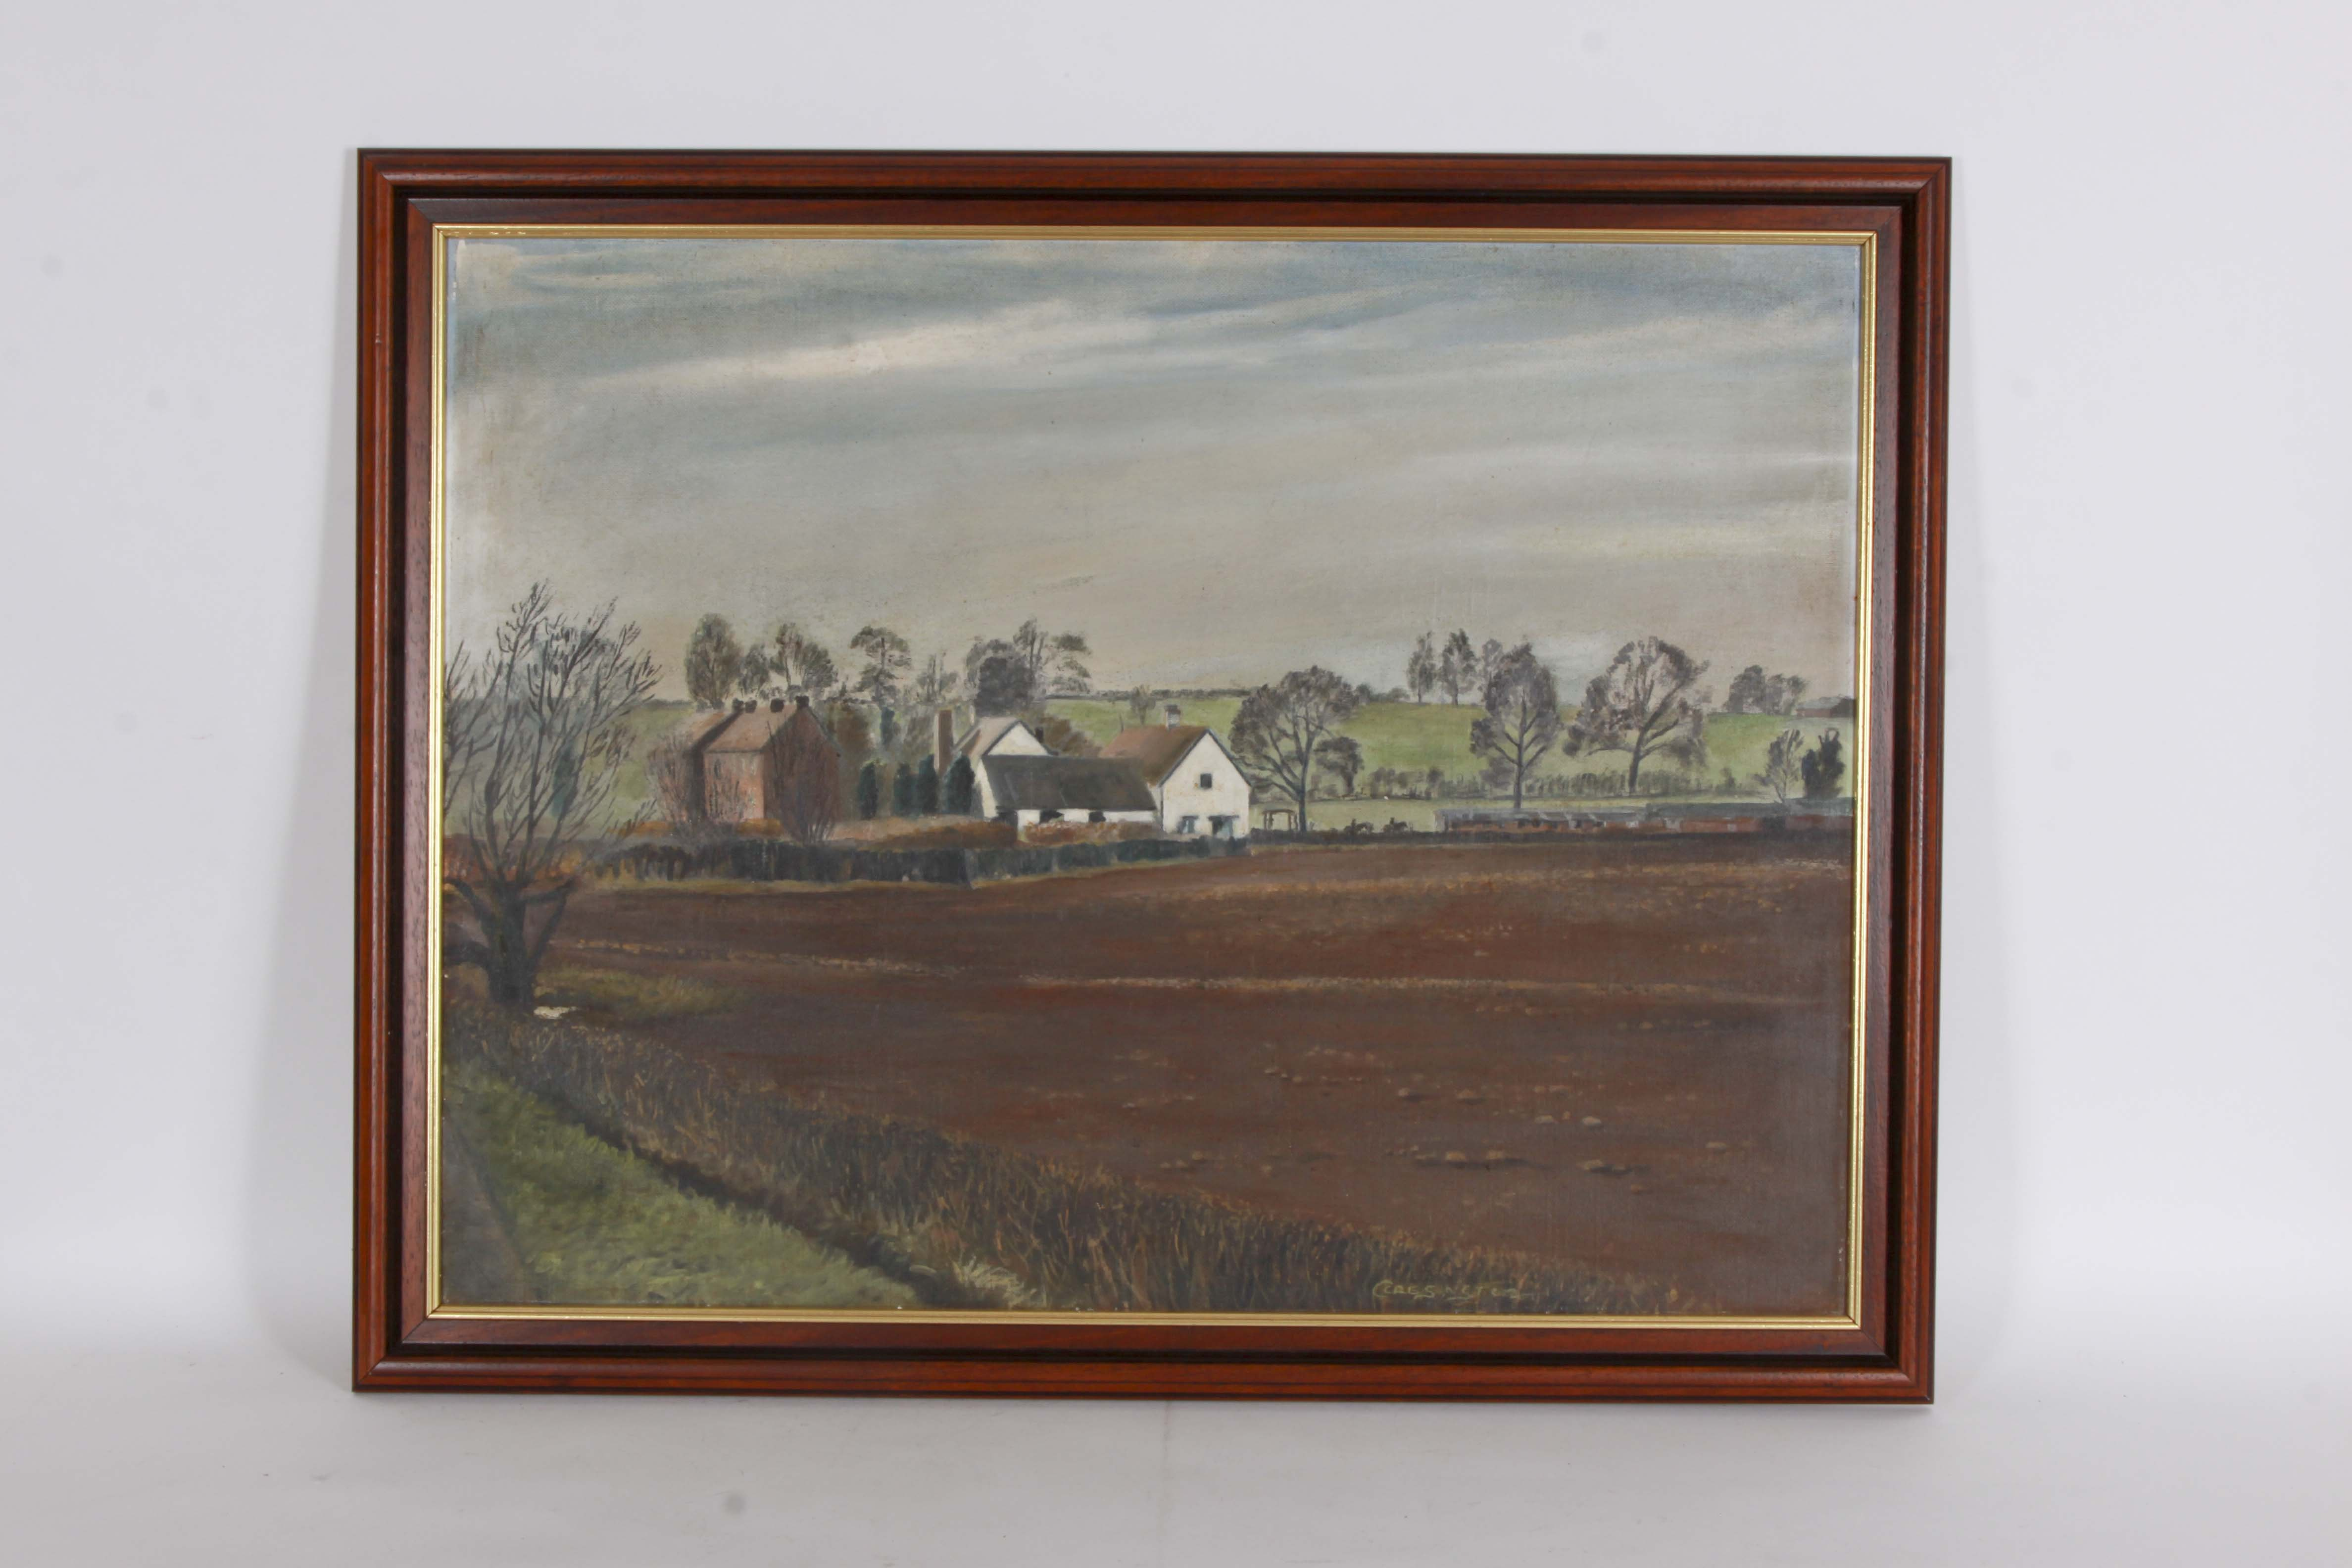 Original Oil Painting of a Landscape on Board